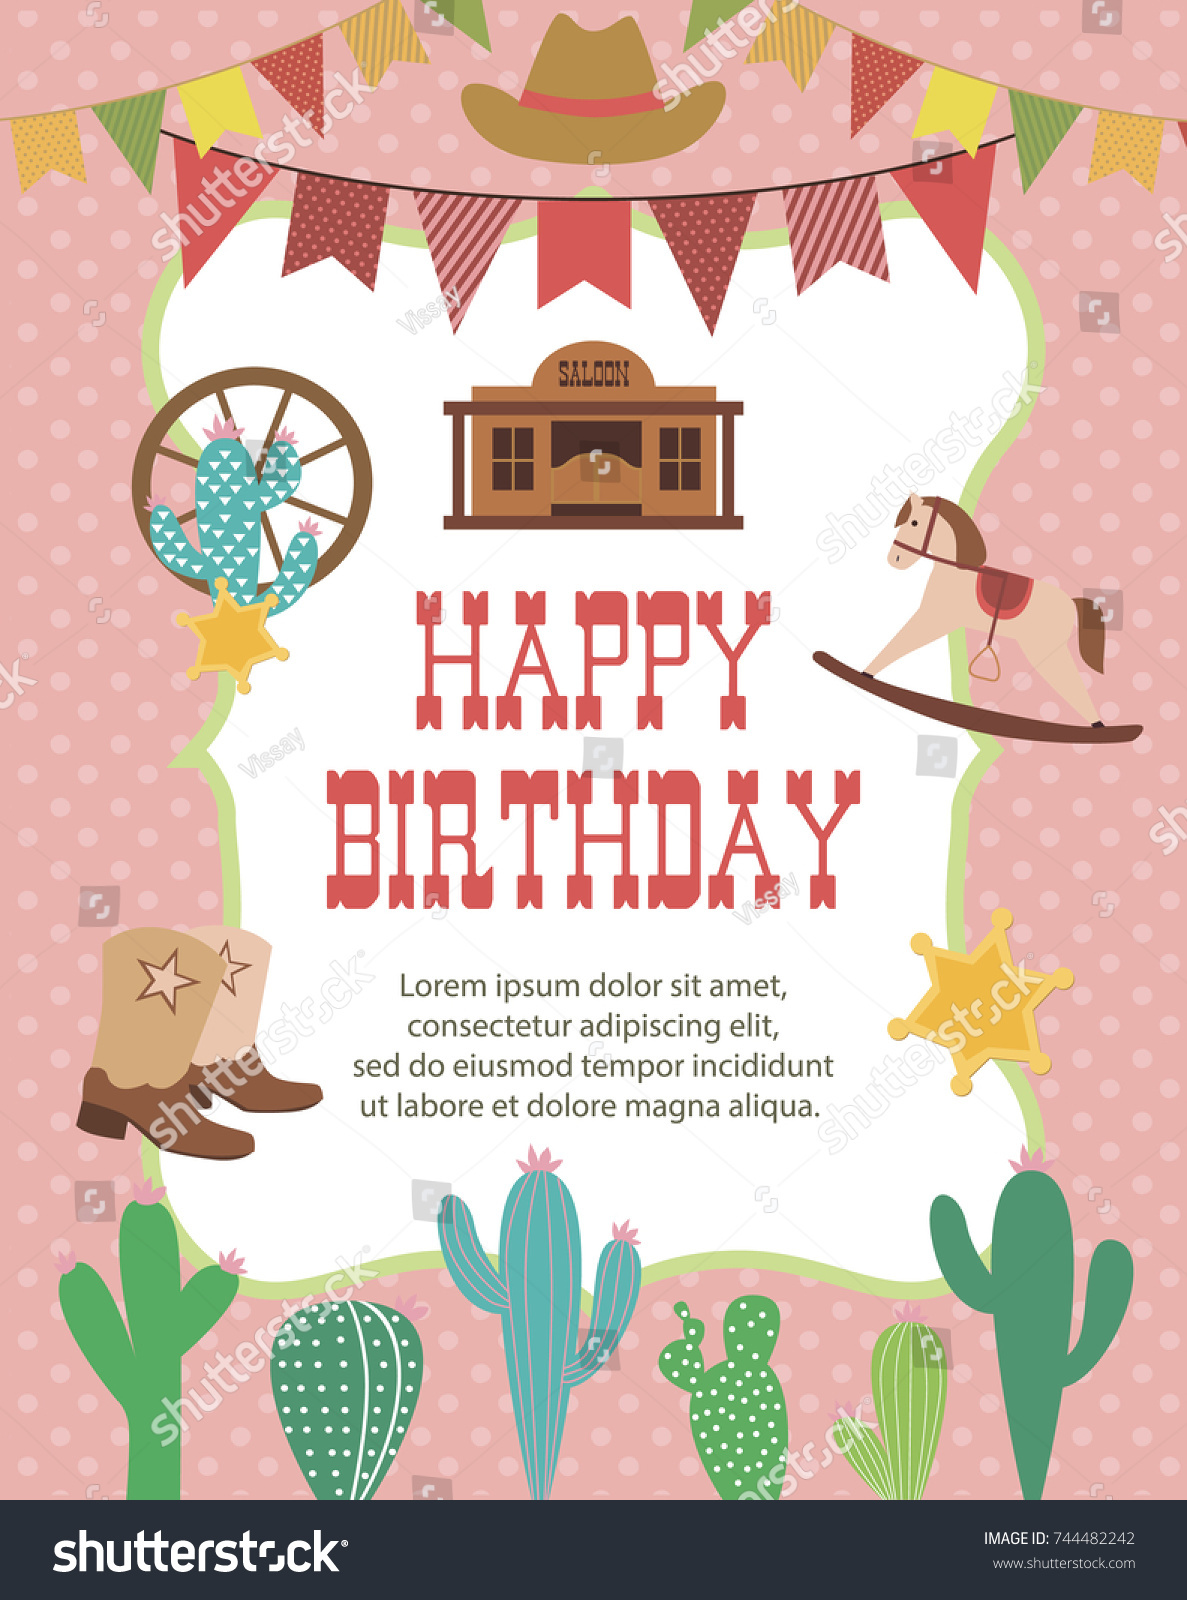 Cowboy Party Invitation Images - Party Invitations Ideas